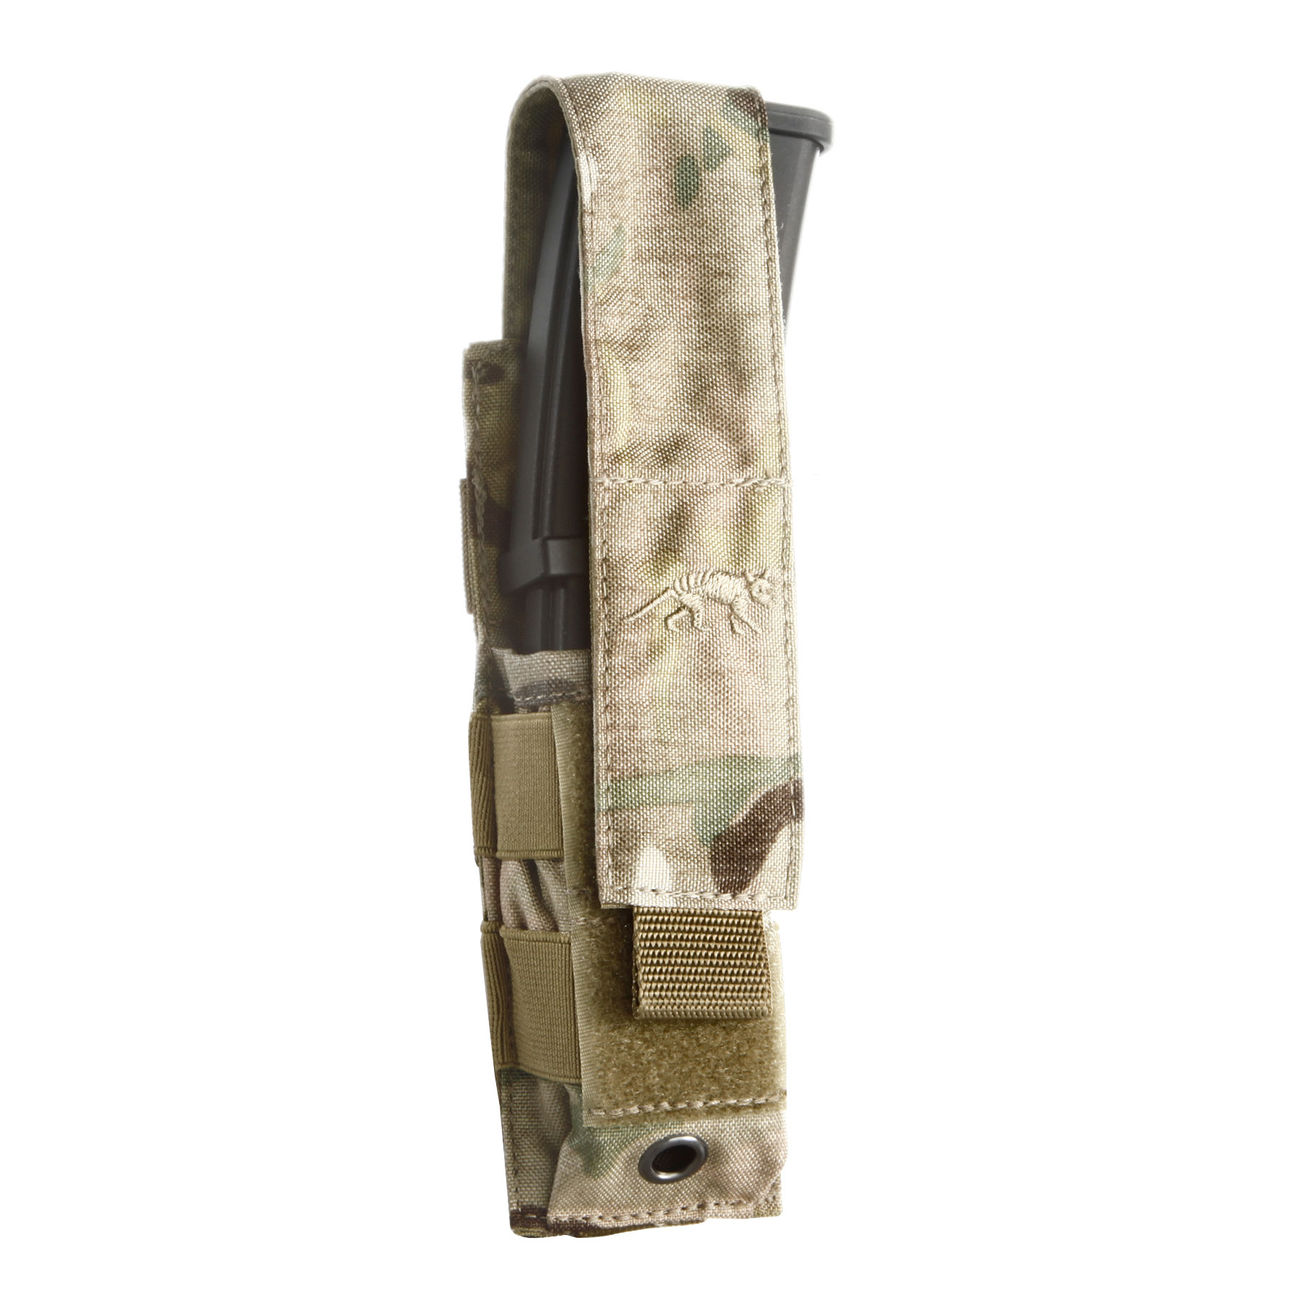 TT Magazintasche SGL Mag Pouch MP7 (40er) Multicam 1